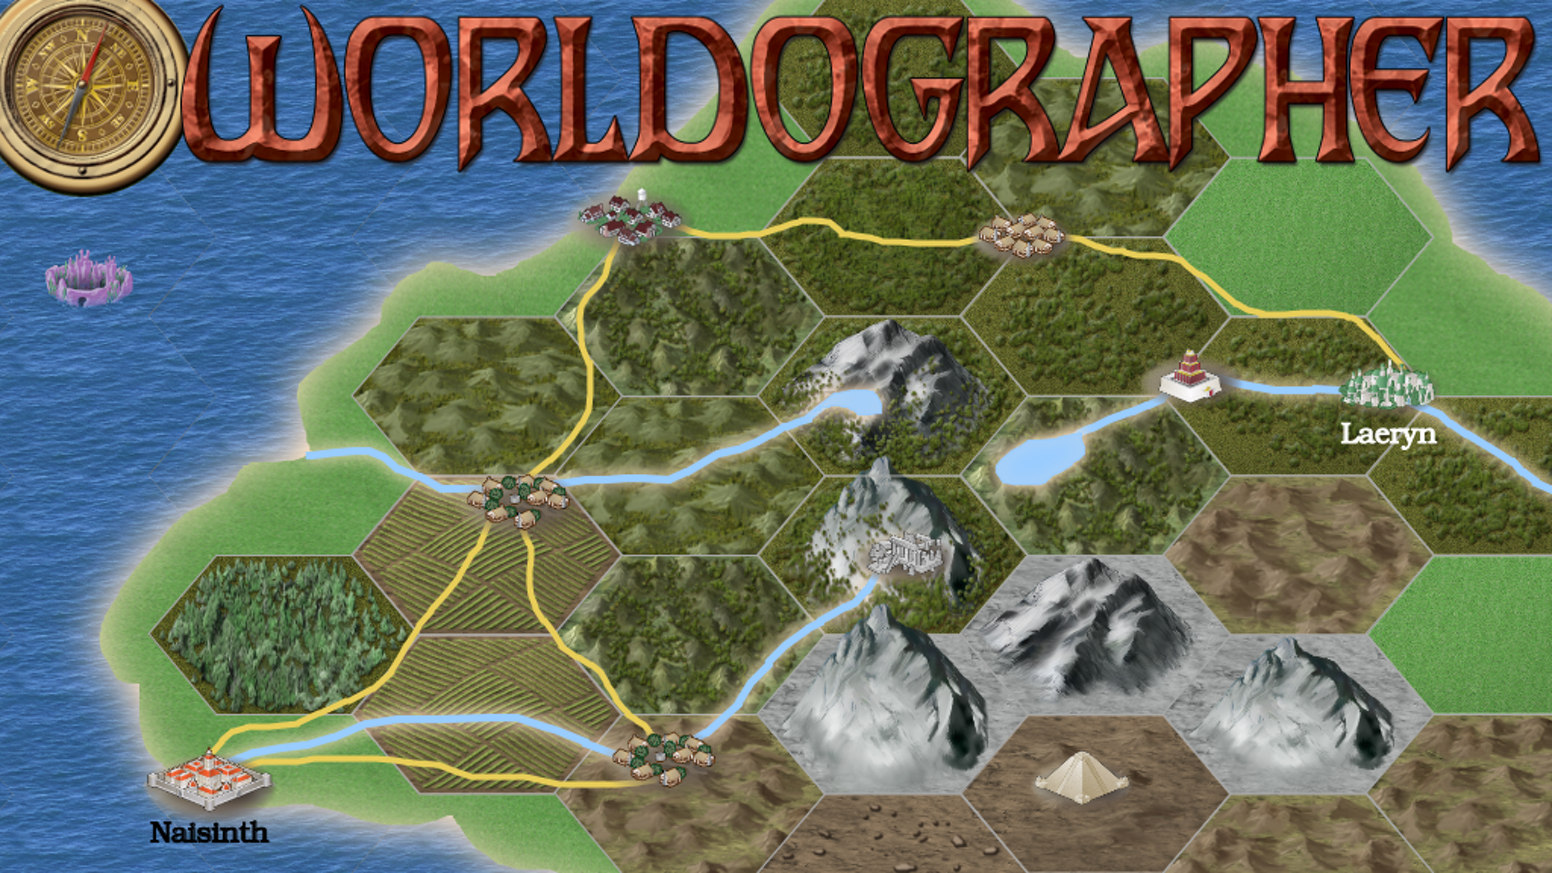 Worldographer hexographer 2 easy mapworld creator by inkwell new version of the hexographer world map software better child maps undoredo gumiabroncs Choice Image